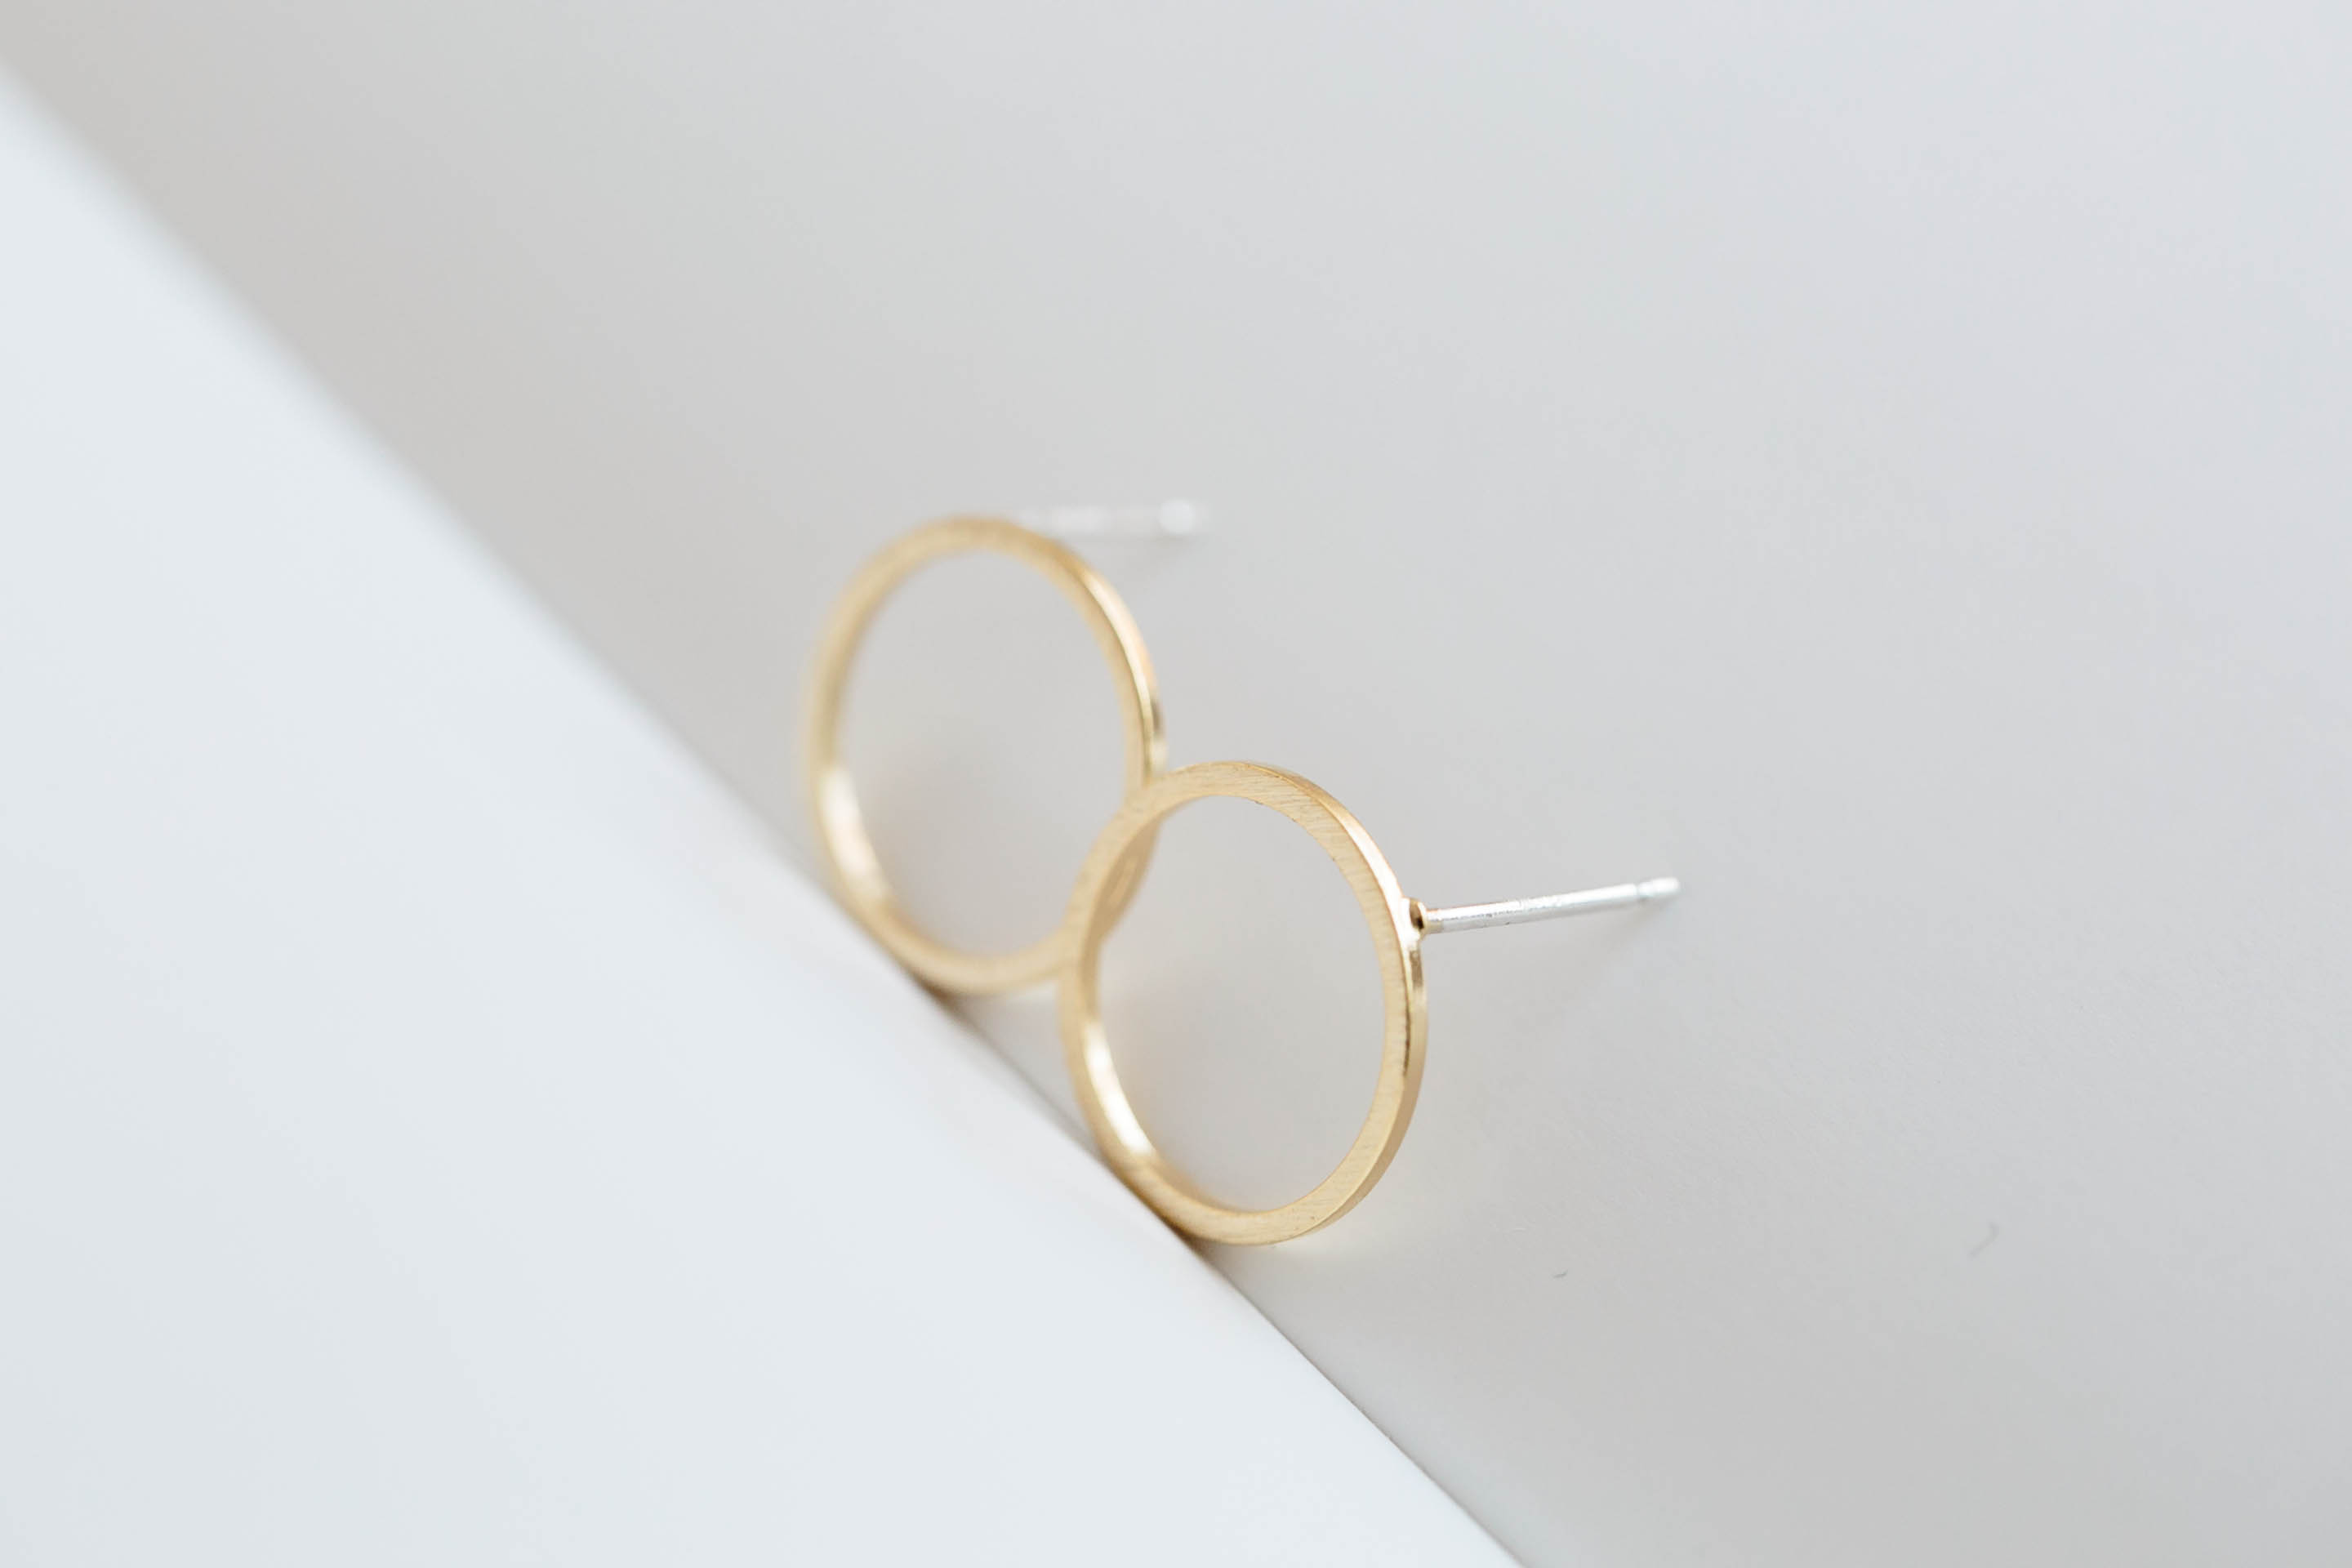 open endless ear ideas images pinterest circles hoop circle on stud best piercings piercing gold earrings thin earring round